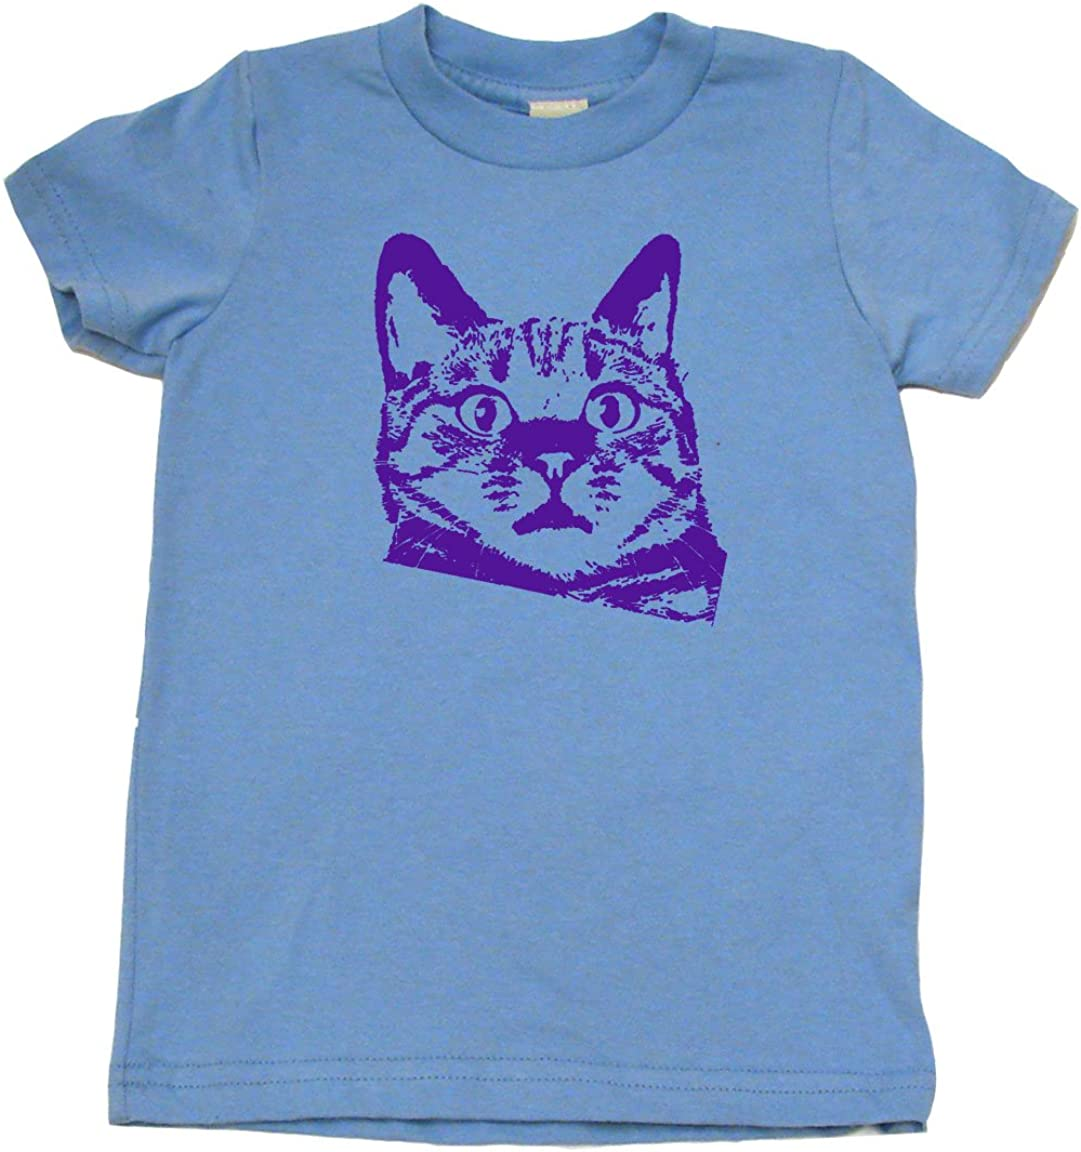 Grumpy Cat Funny Toddler Clothes Cute Boy Or Girl T-Shirts Funny Baby Gift